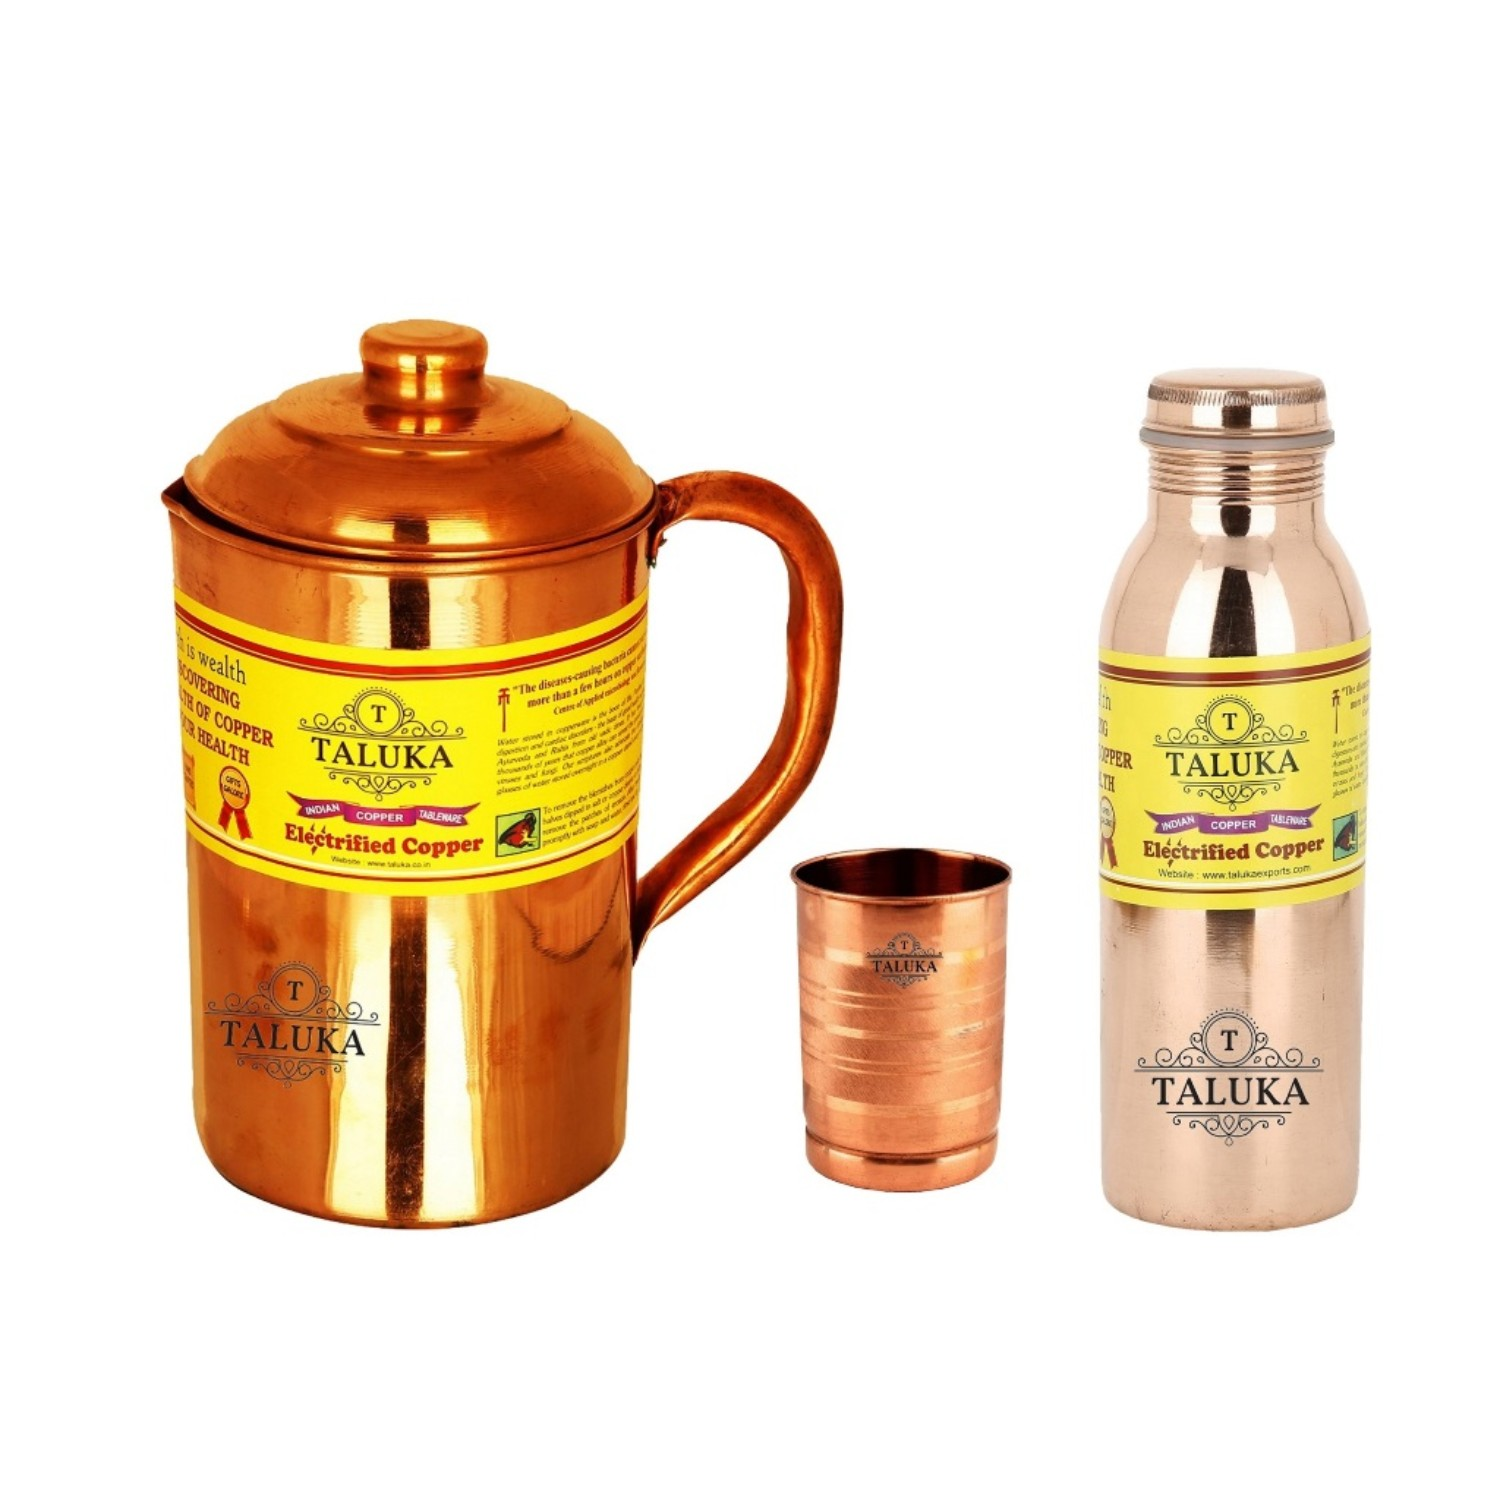 Handmade Copper Jug Pitcher 1500 Ml With 1 PC Copper Glass & 1 PC Leak Proof Joint Free Water Bottle